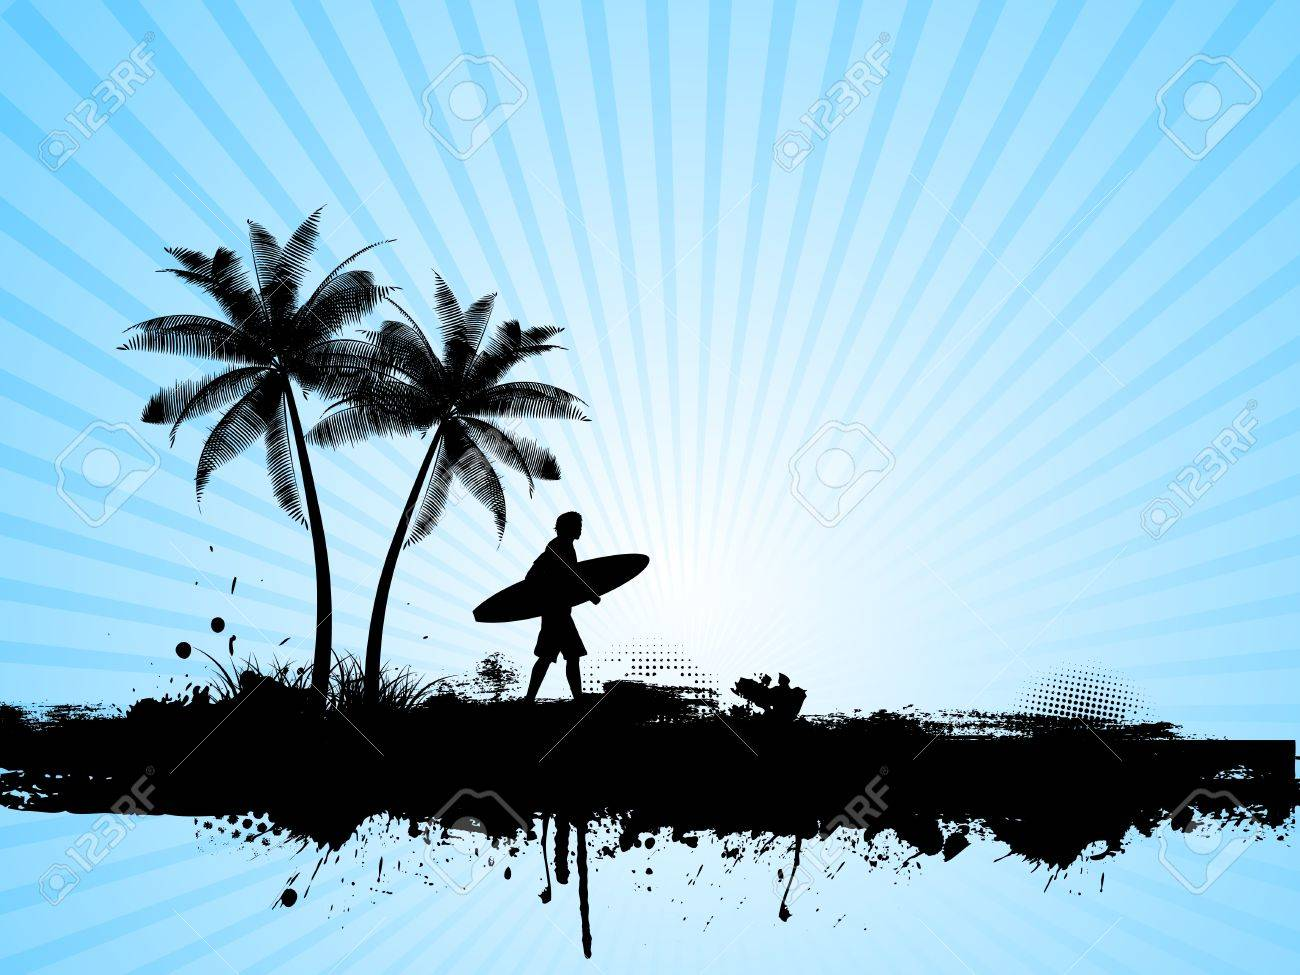 Silhouette of a surfer on a grunge palm tree background Stock Vector - 4979430